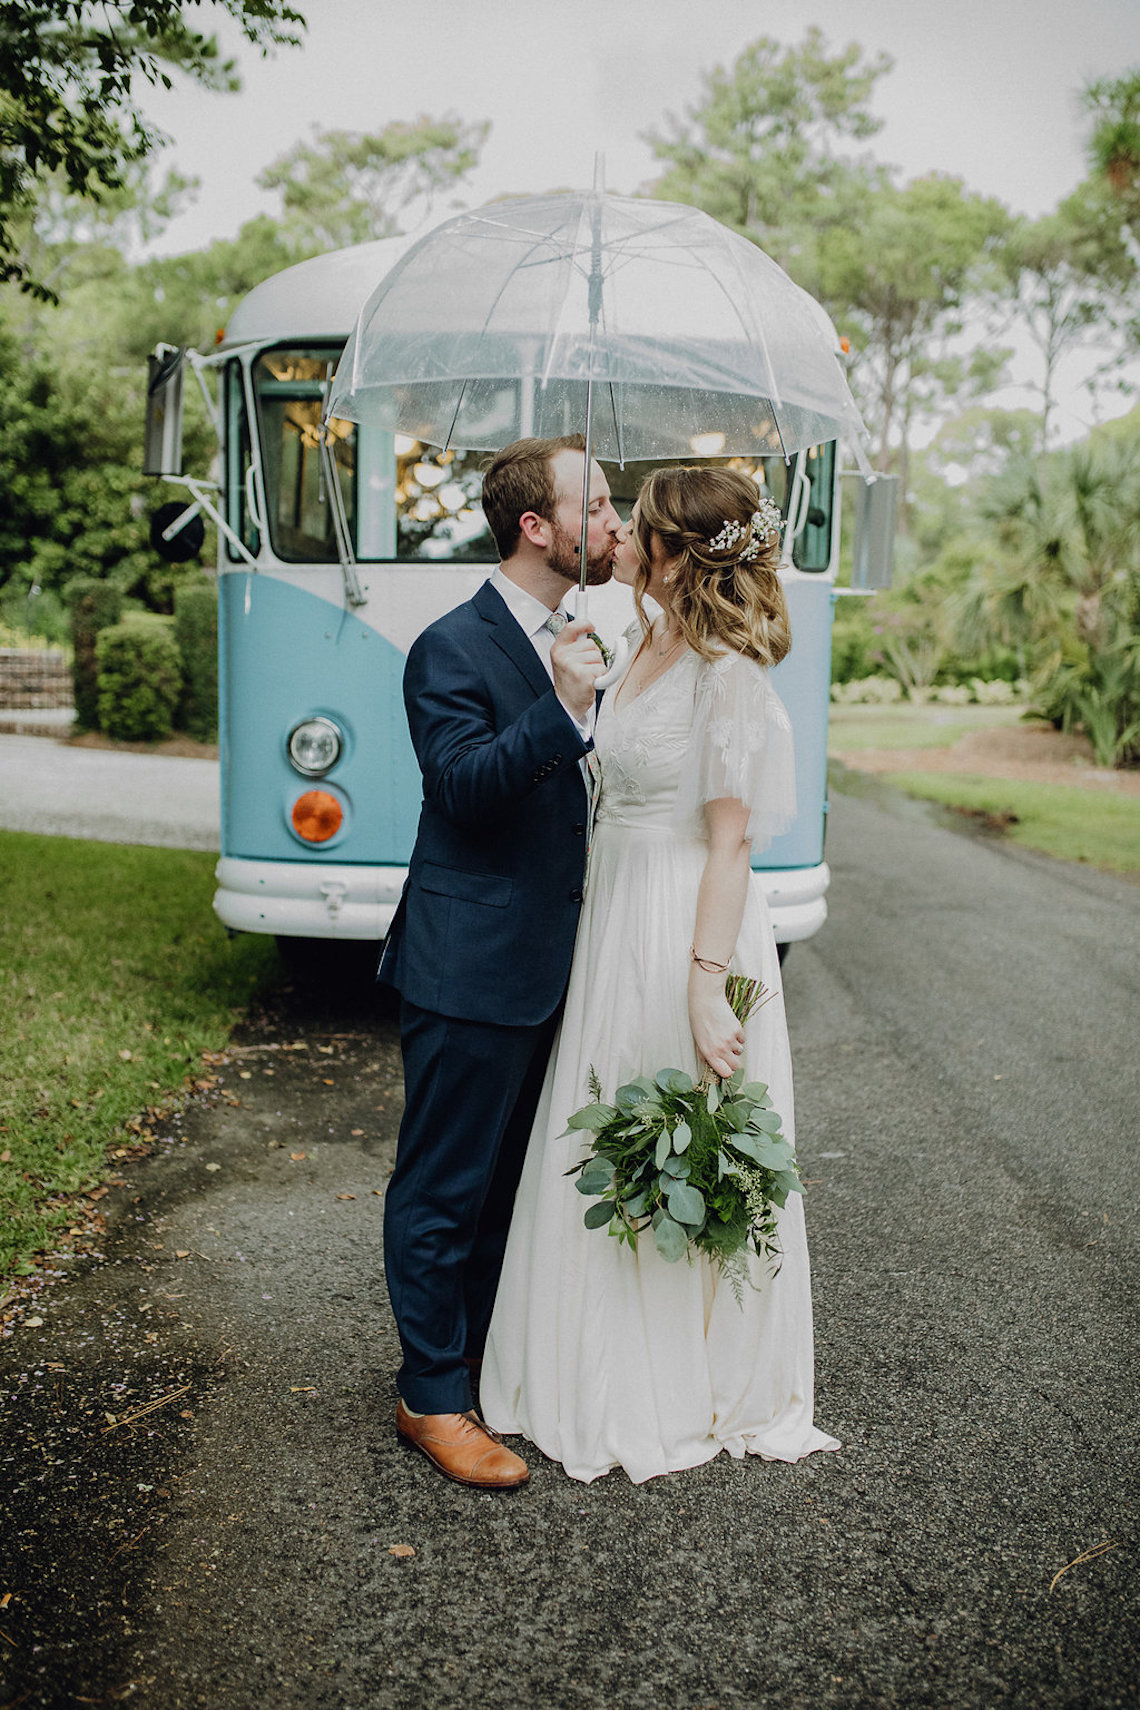 Quirky Vintage Food Truck Wedding Filled With Details – Amanda Rose Weddings – Kara Quinn Photography 37